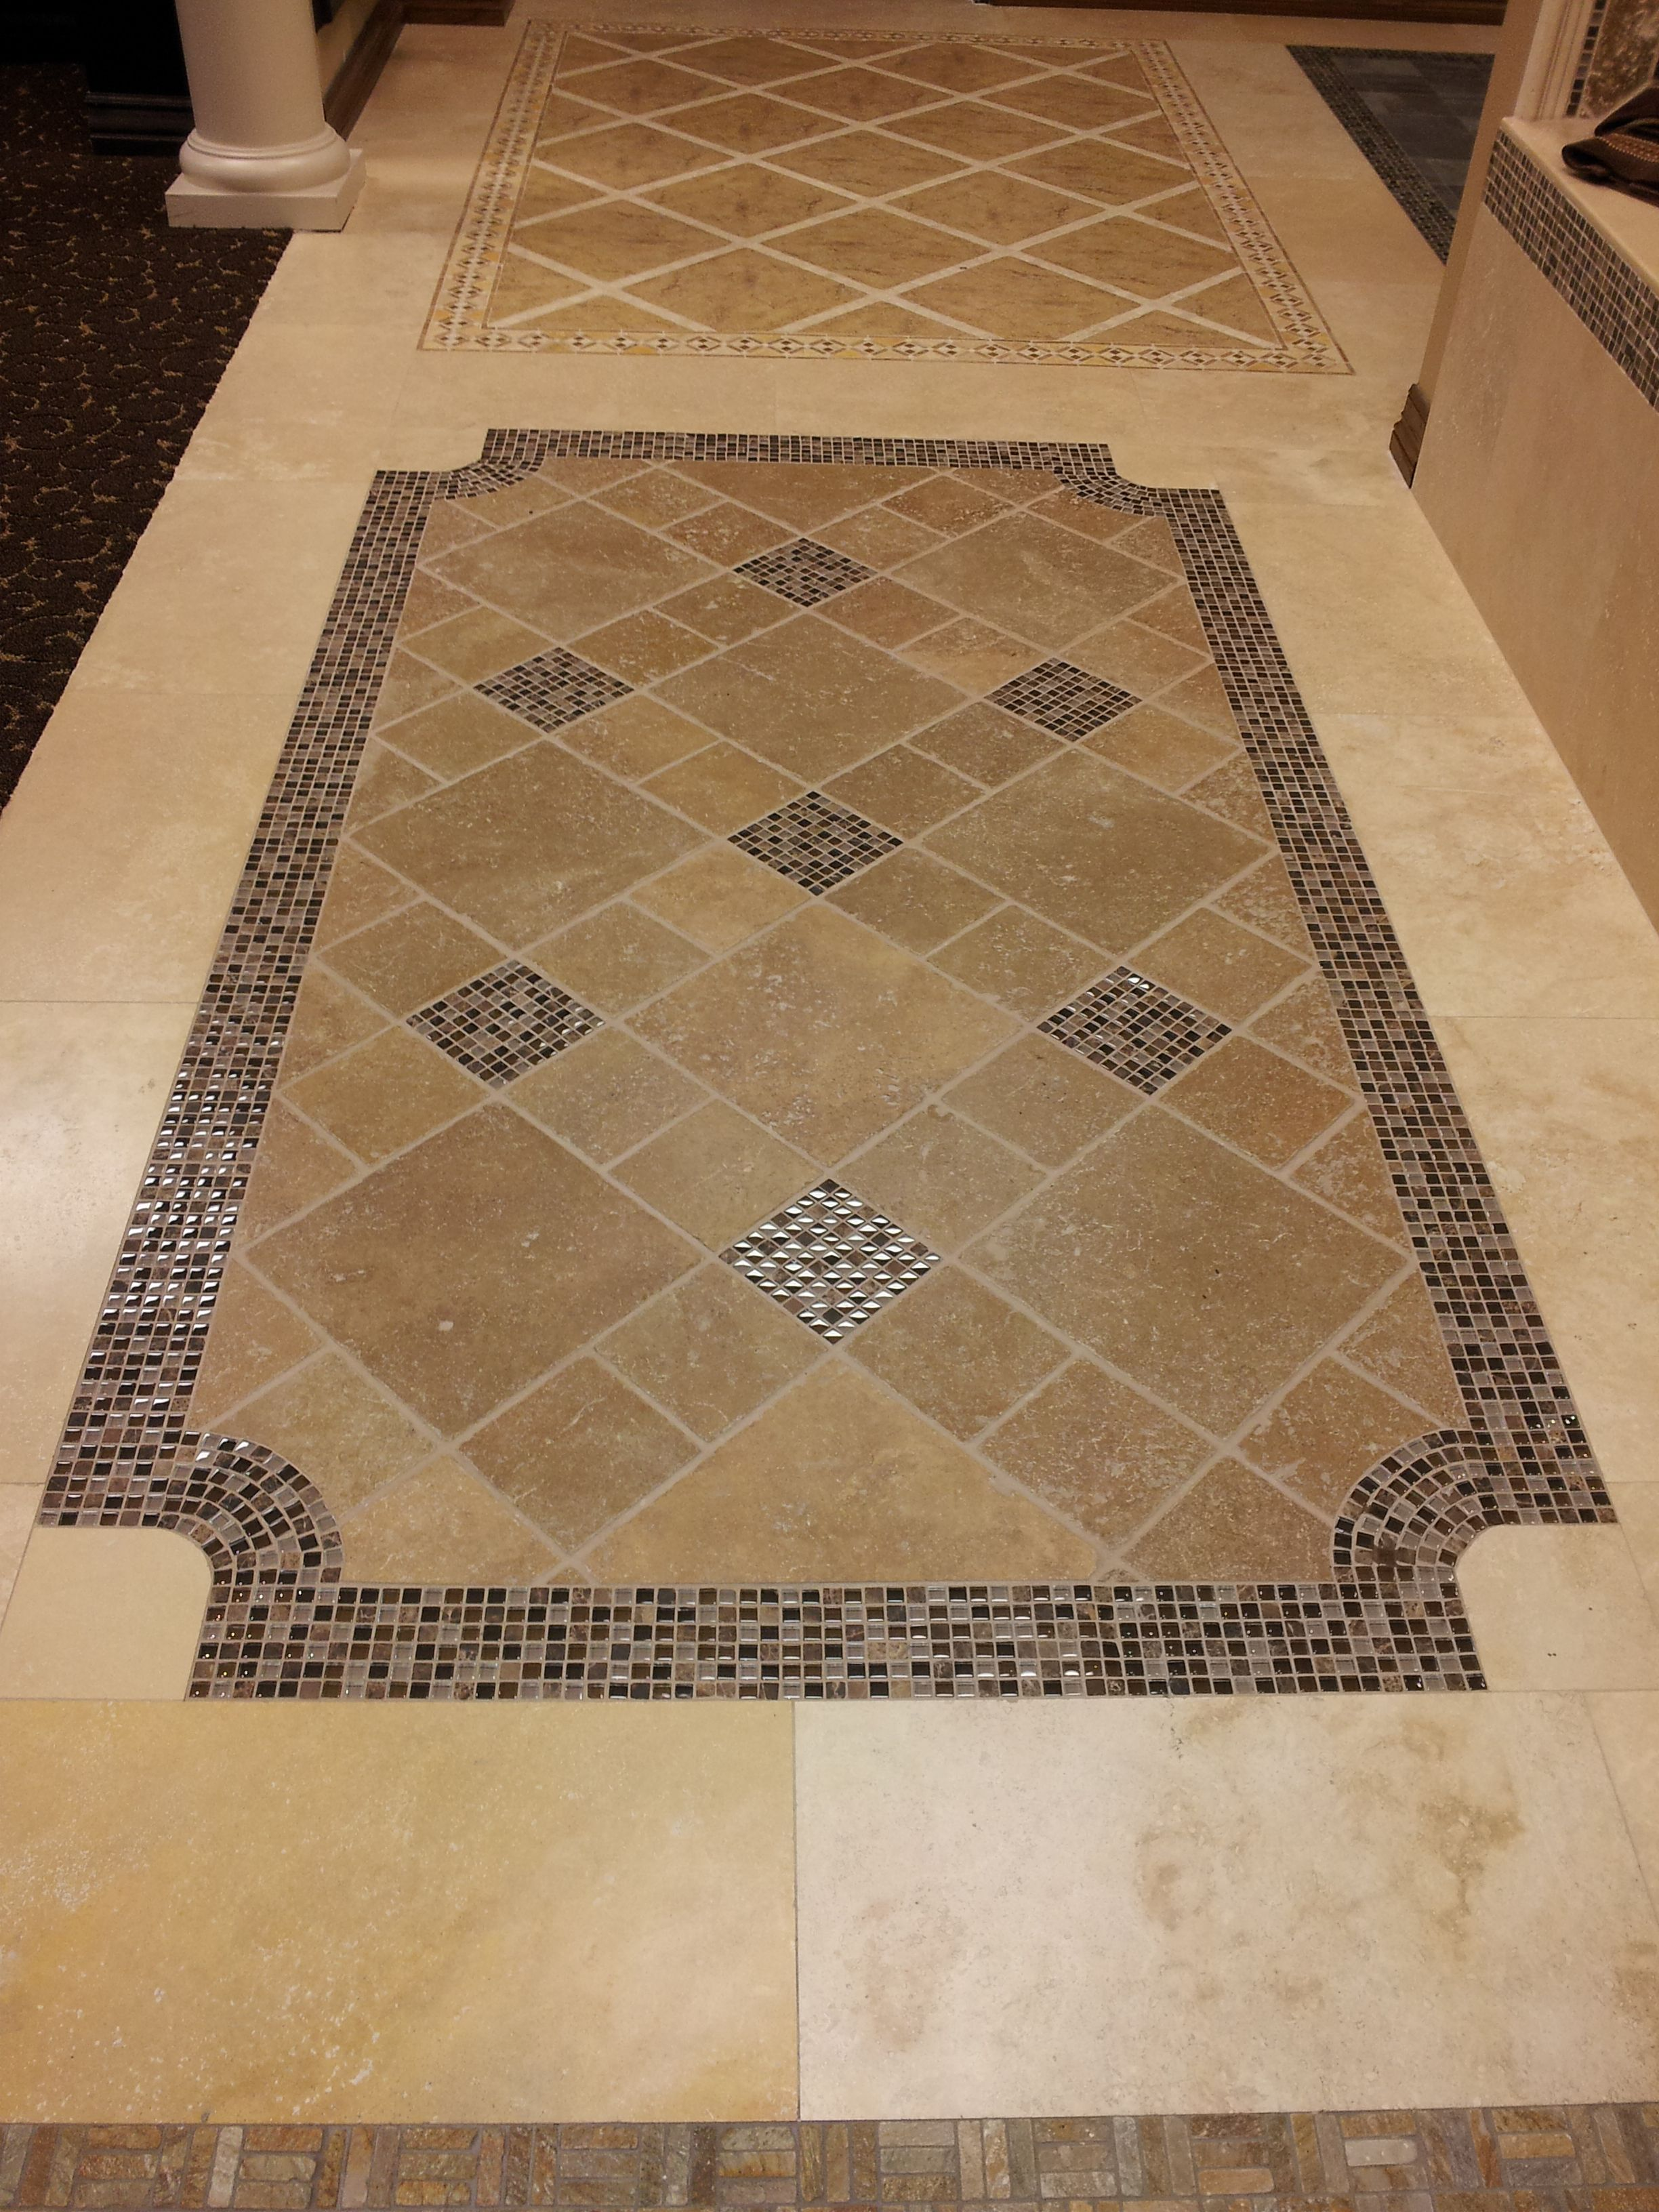 Tile Floor Design Idea For The Home Pinterest